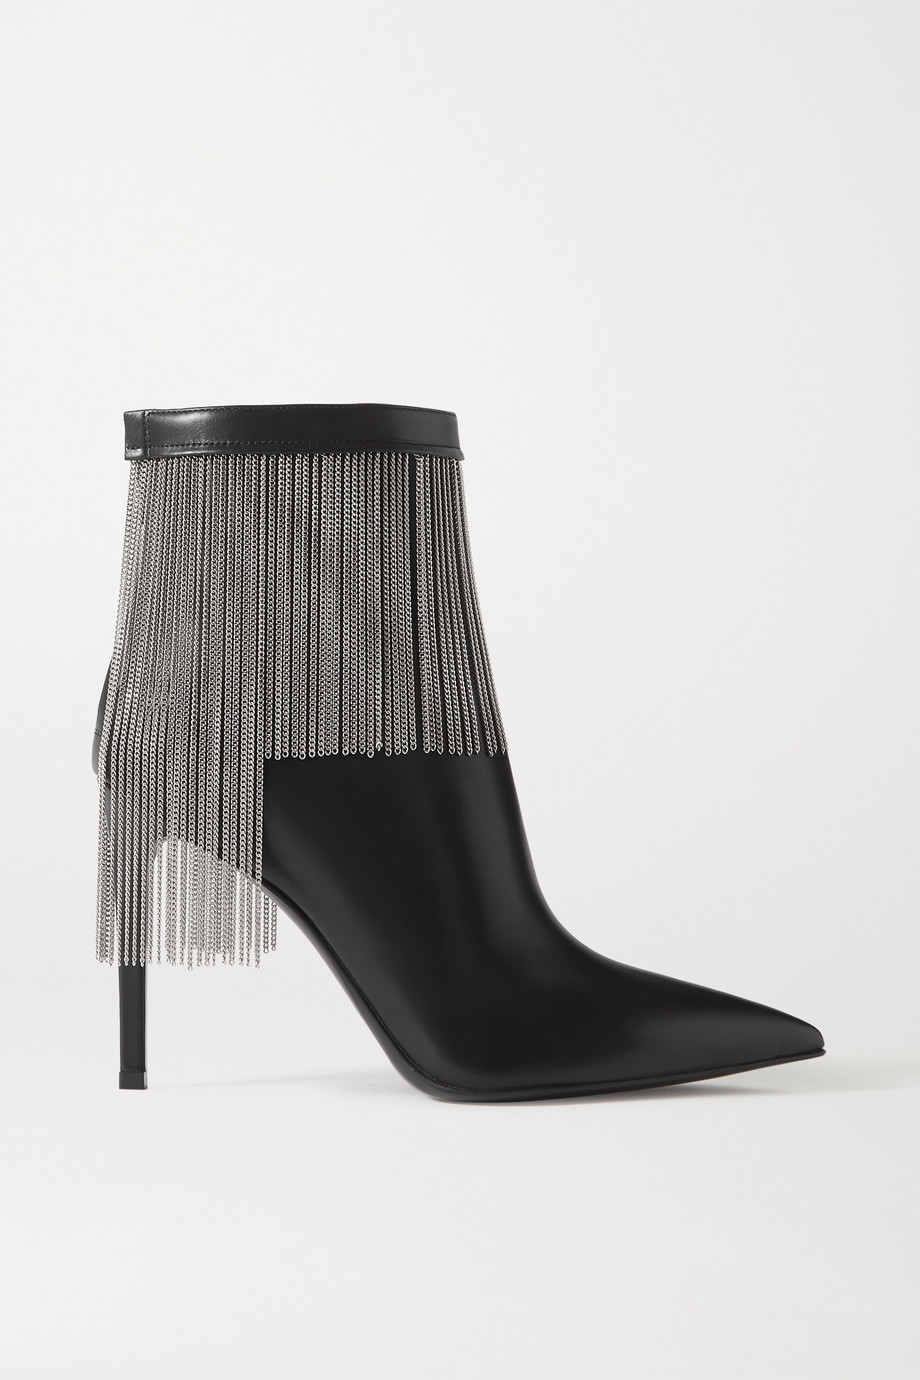 Balmain Mercy fringed leather ankle boots